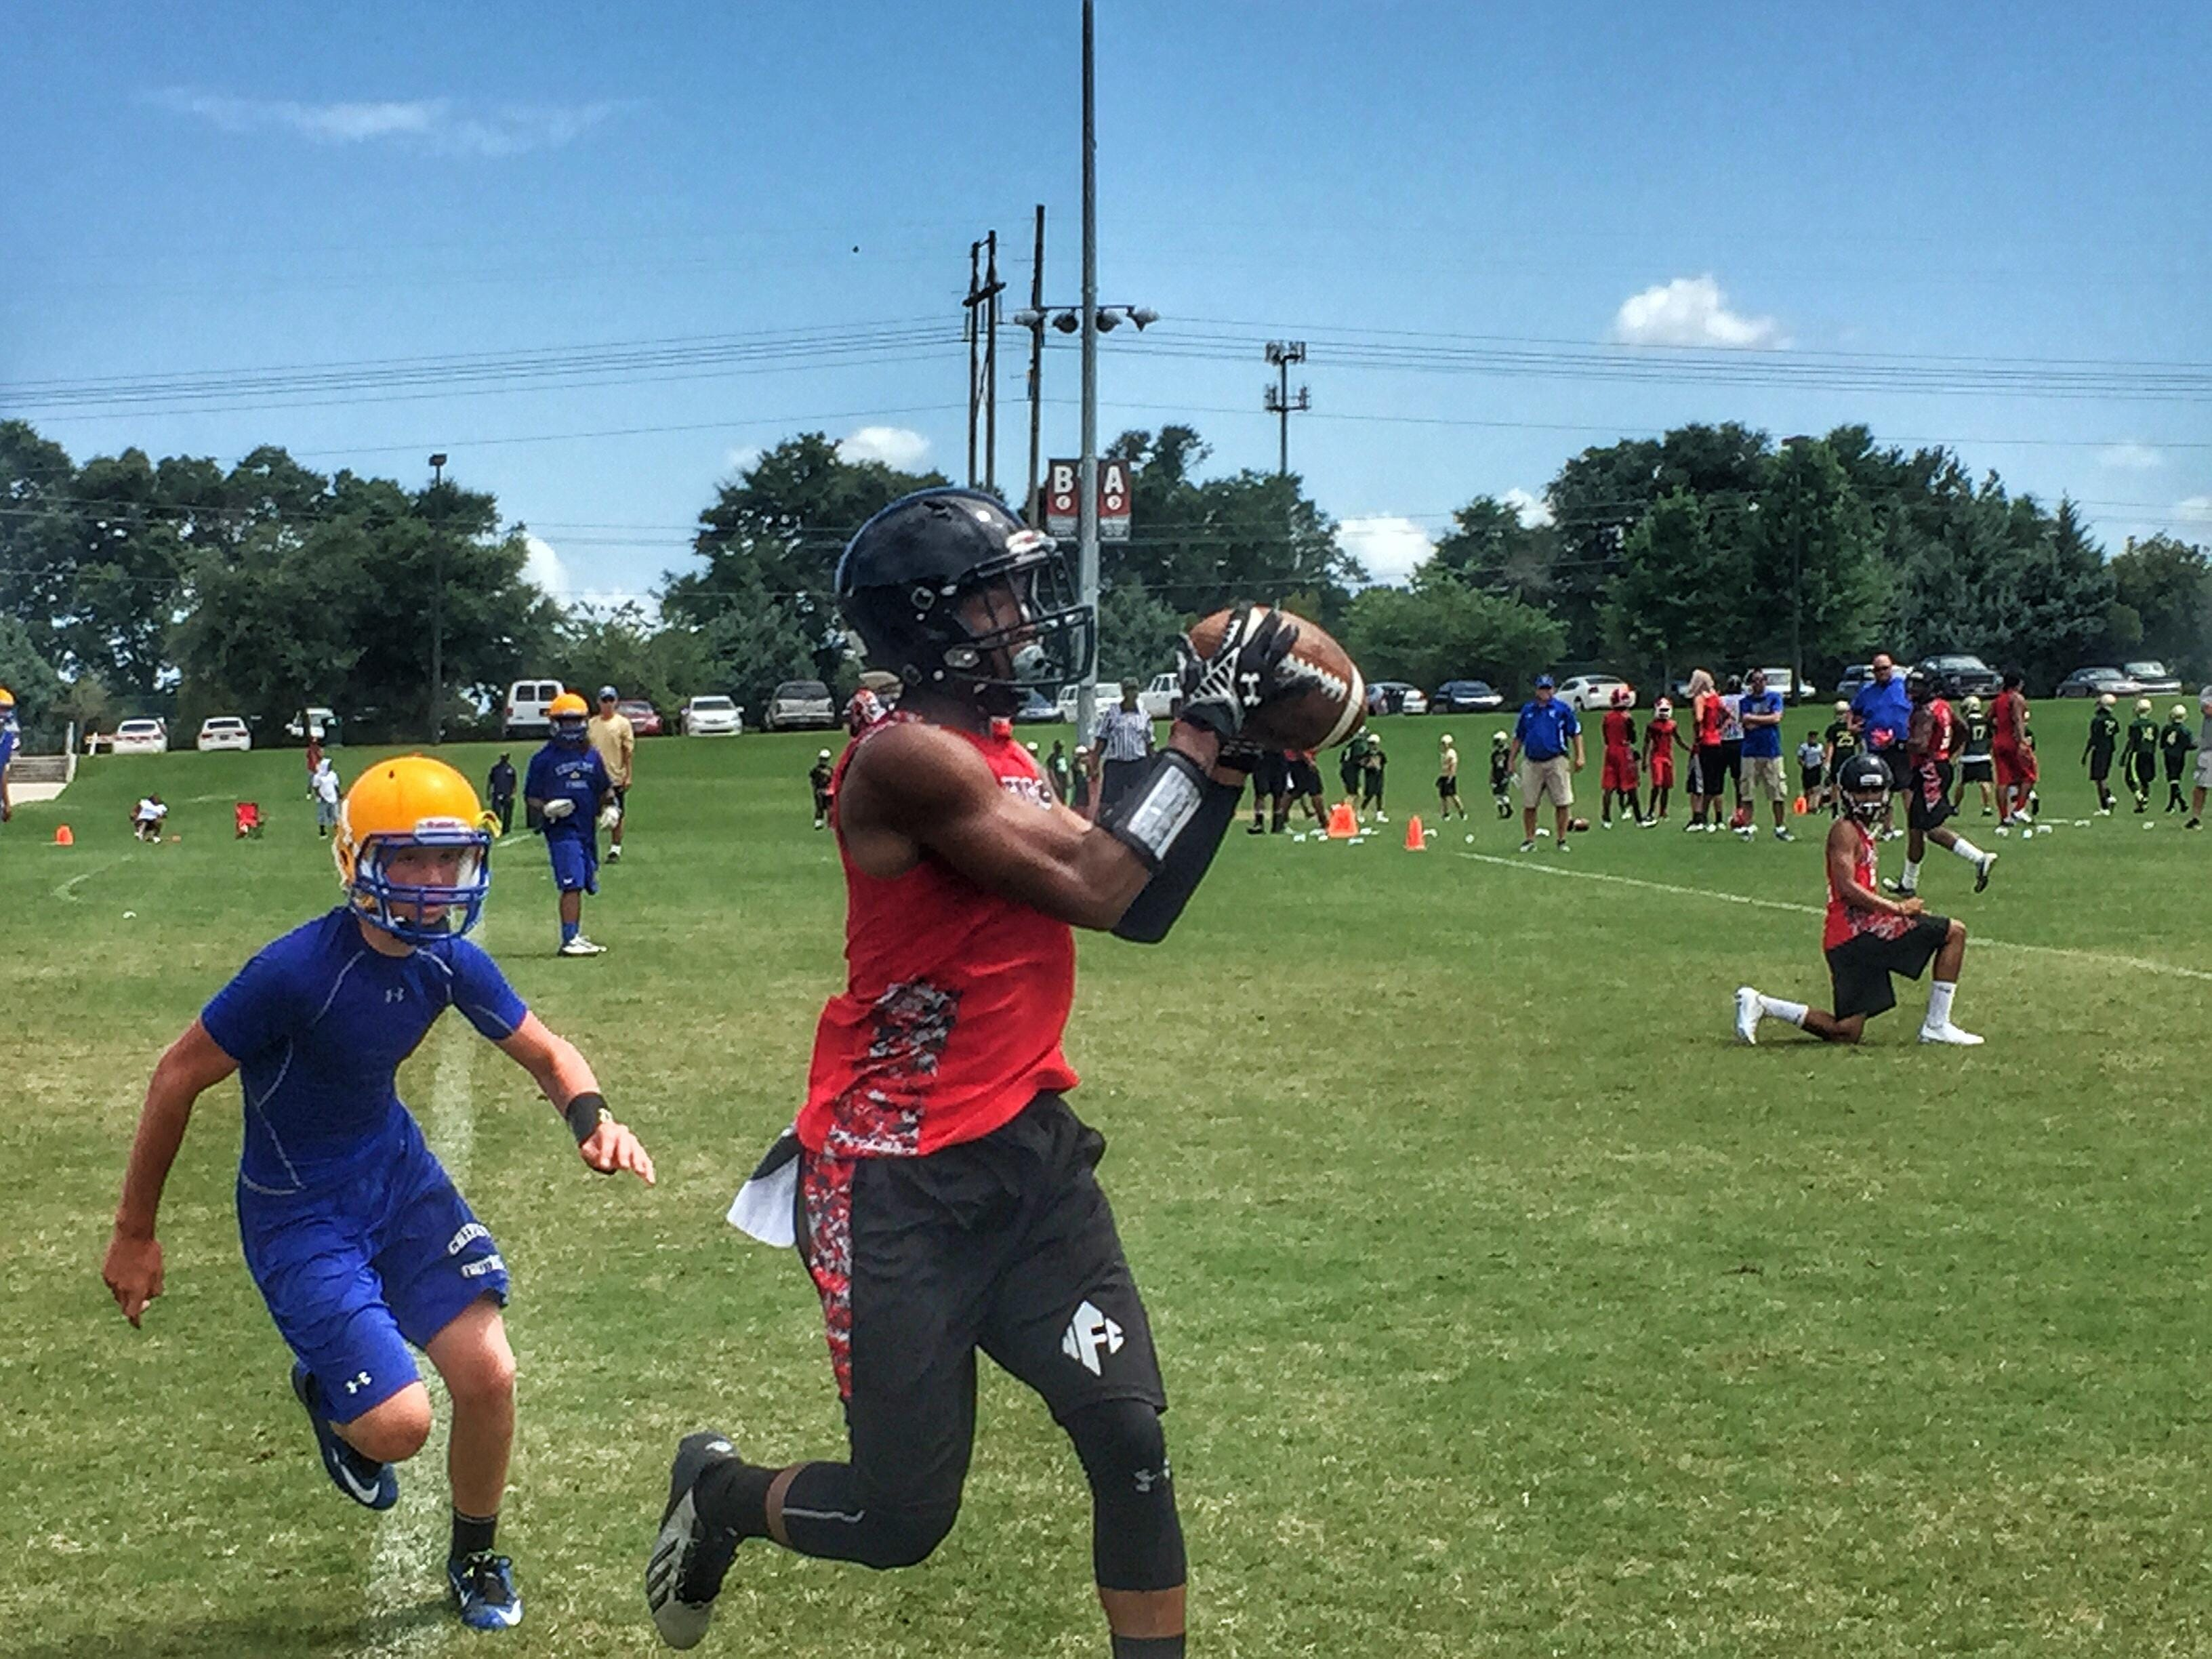 NFC's Korey Charles catches a ball at FSU's 7-on-7 tournament this spring. Charles, a four-star recruit, just committed to Mississippi State.